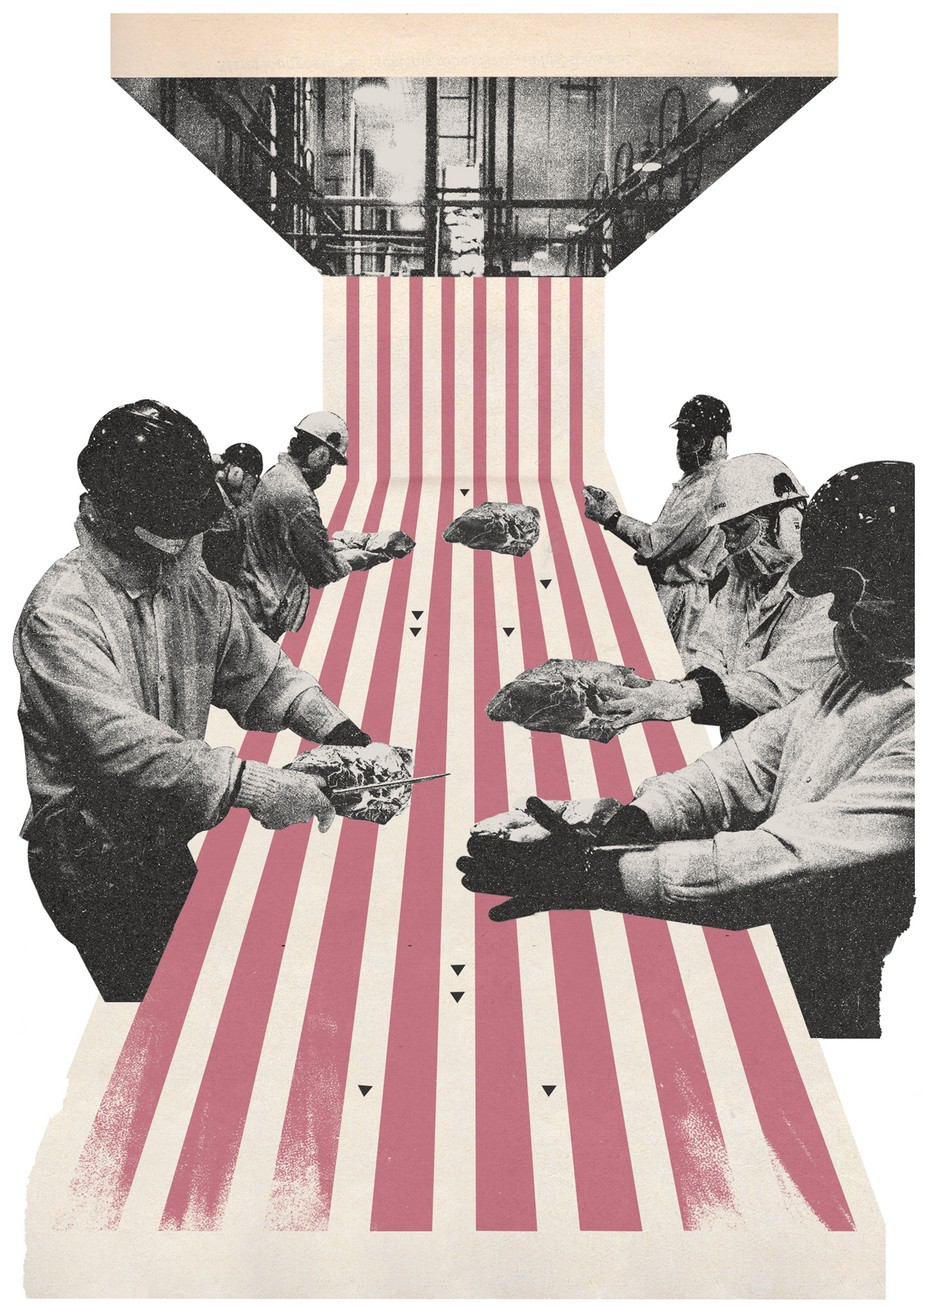 Workers handling meat along an illustrated conveyor belt